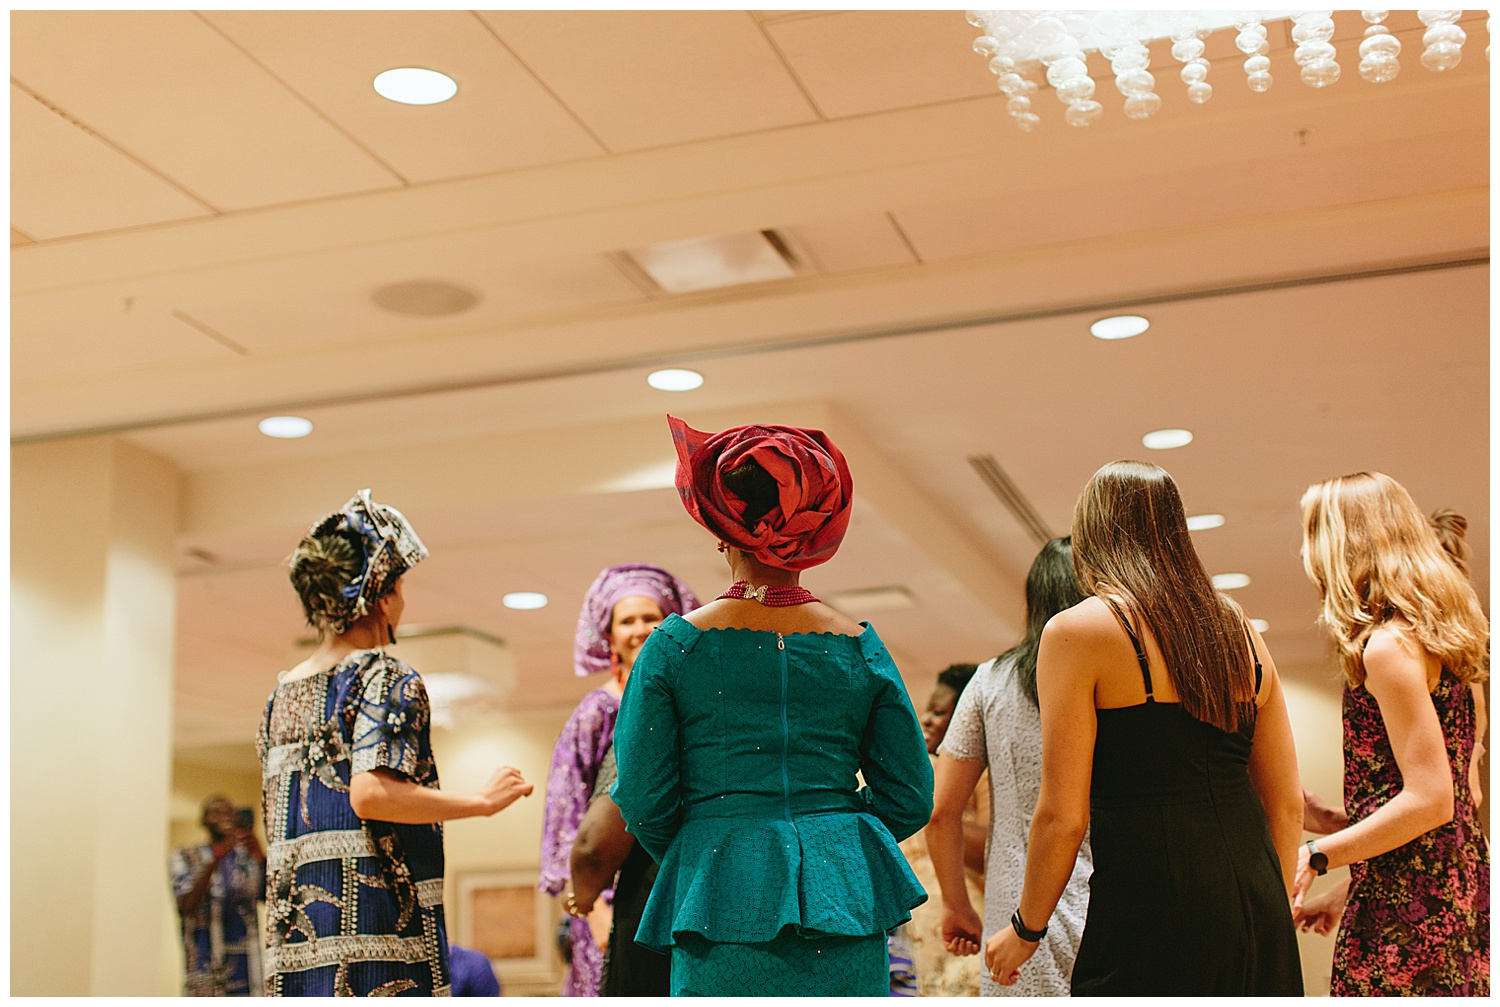 trent.and.kendra.photography.nigerian.wedding.louisville-44.jpg